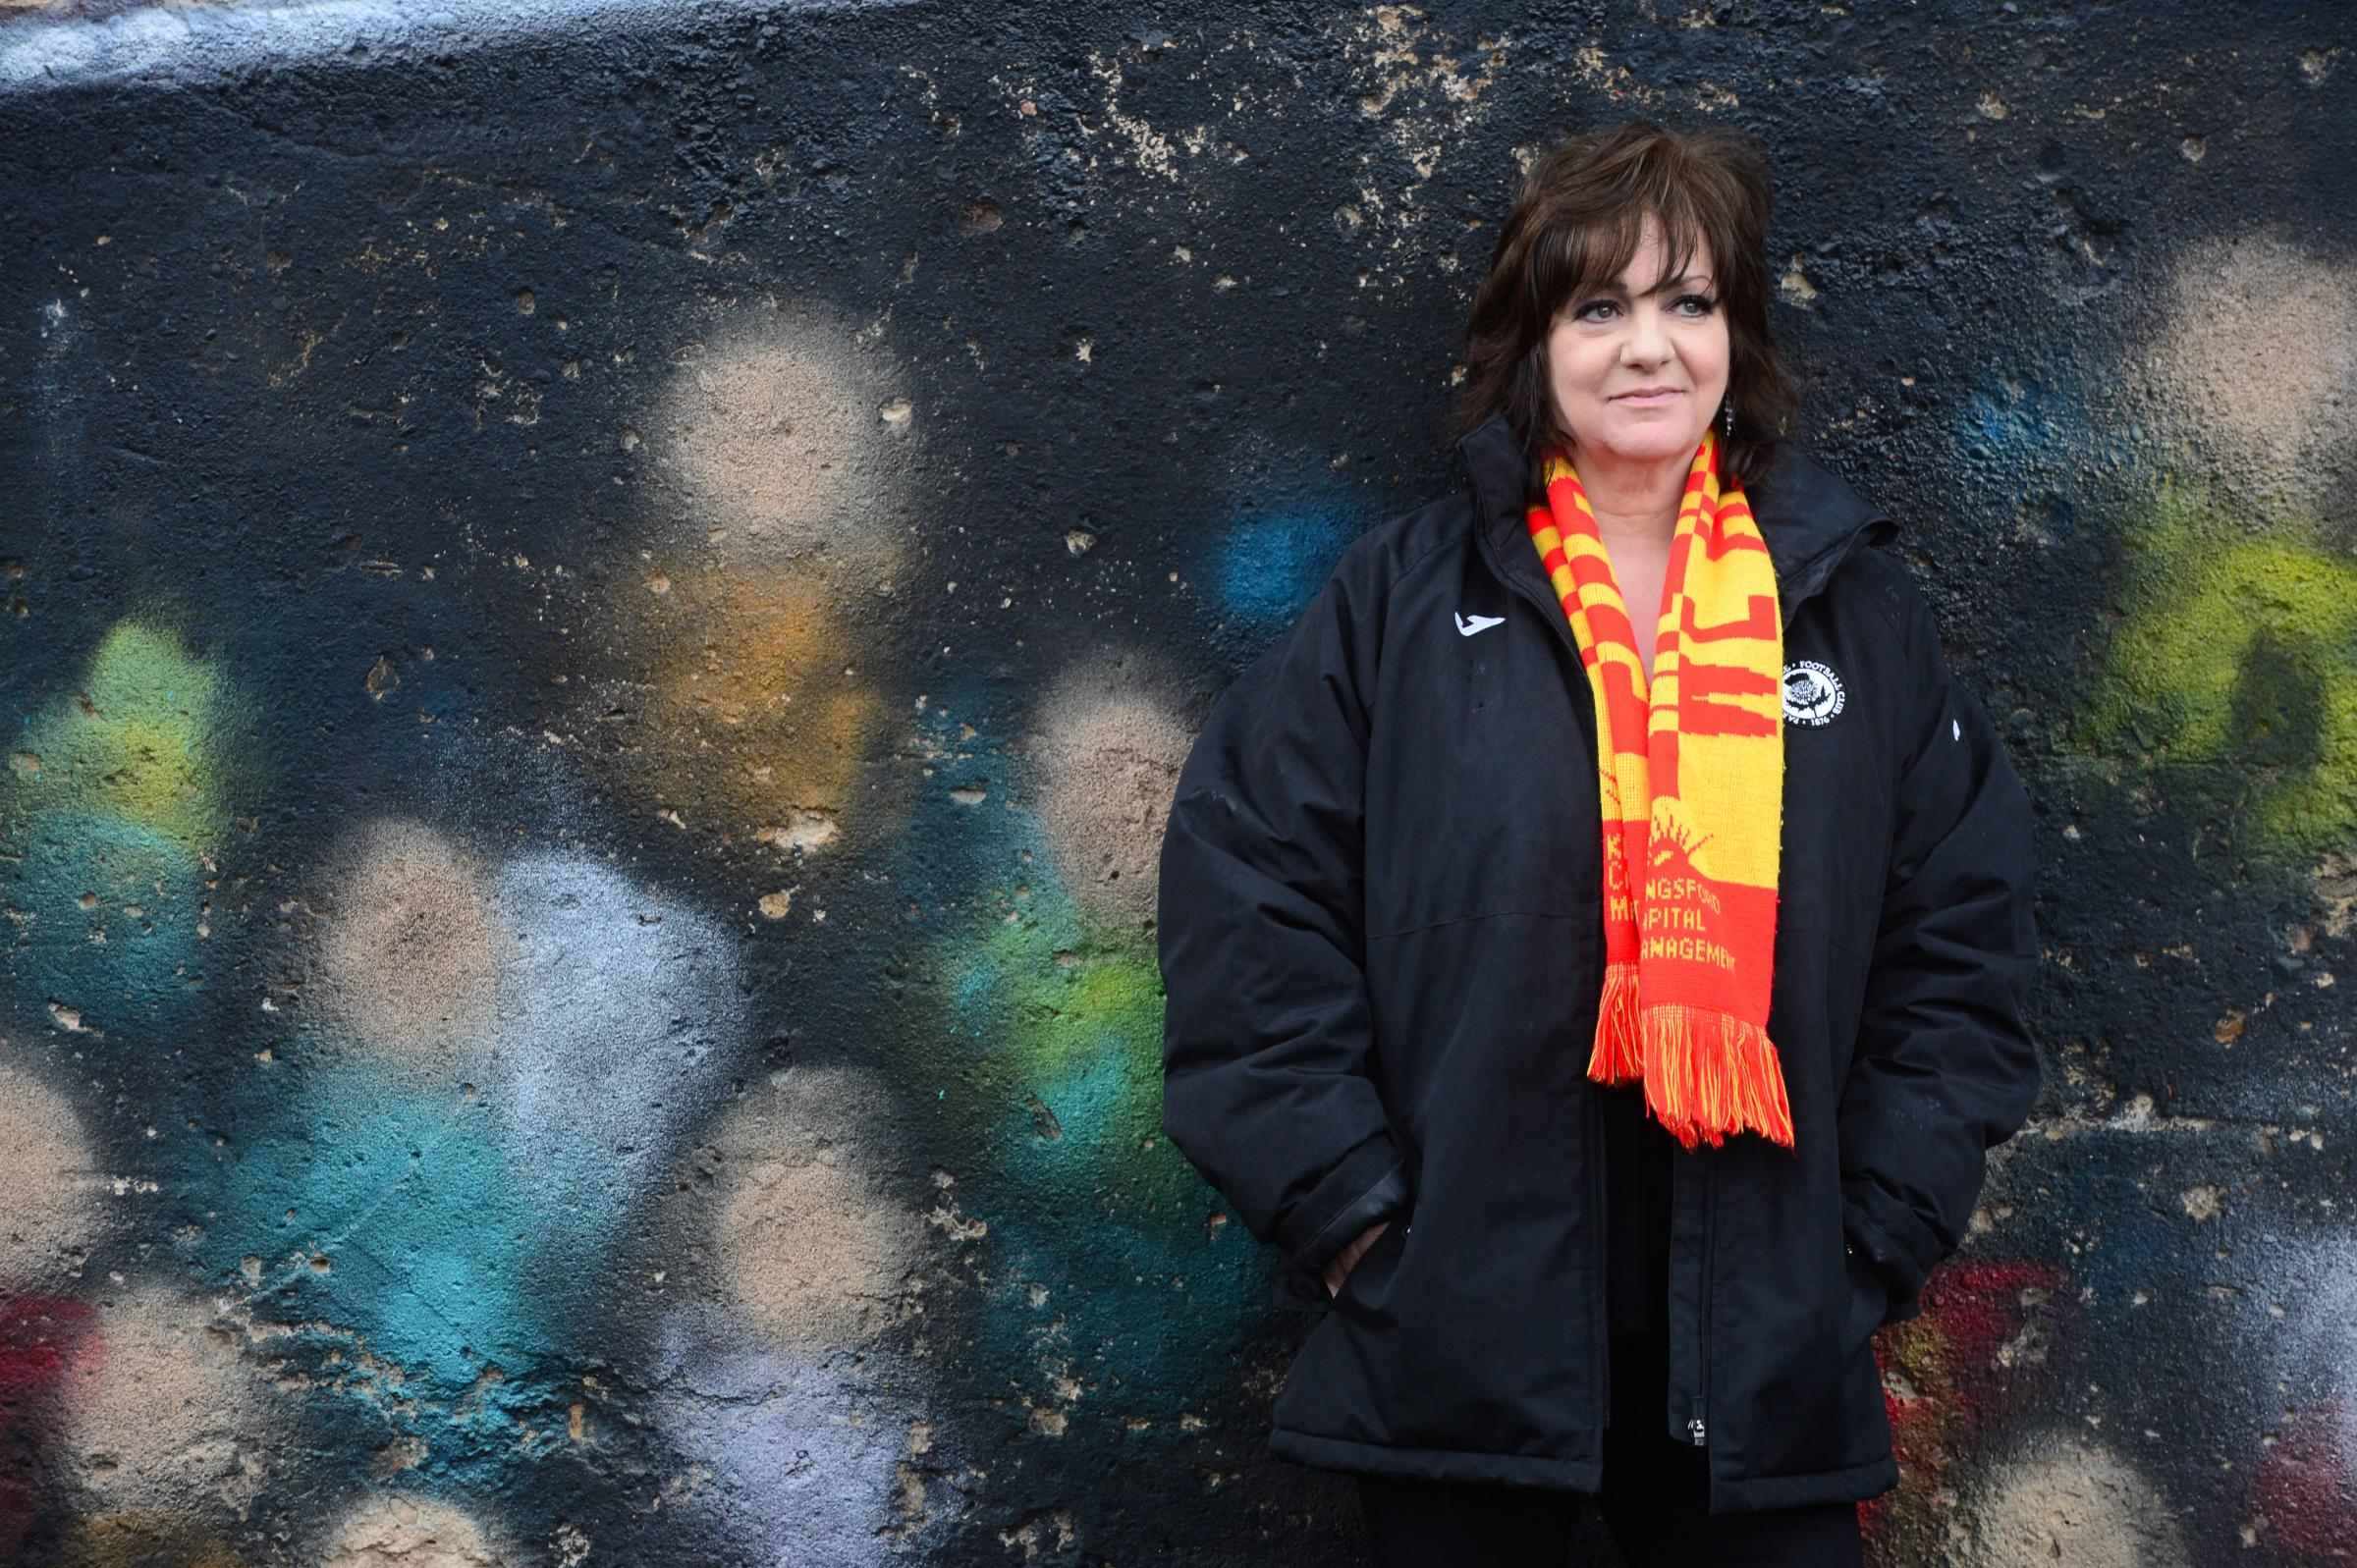 Coronavirus: Partick Thistle chairman Jacqui Low vows all staff will be paid in full